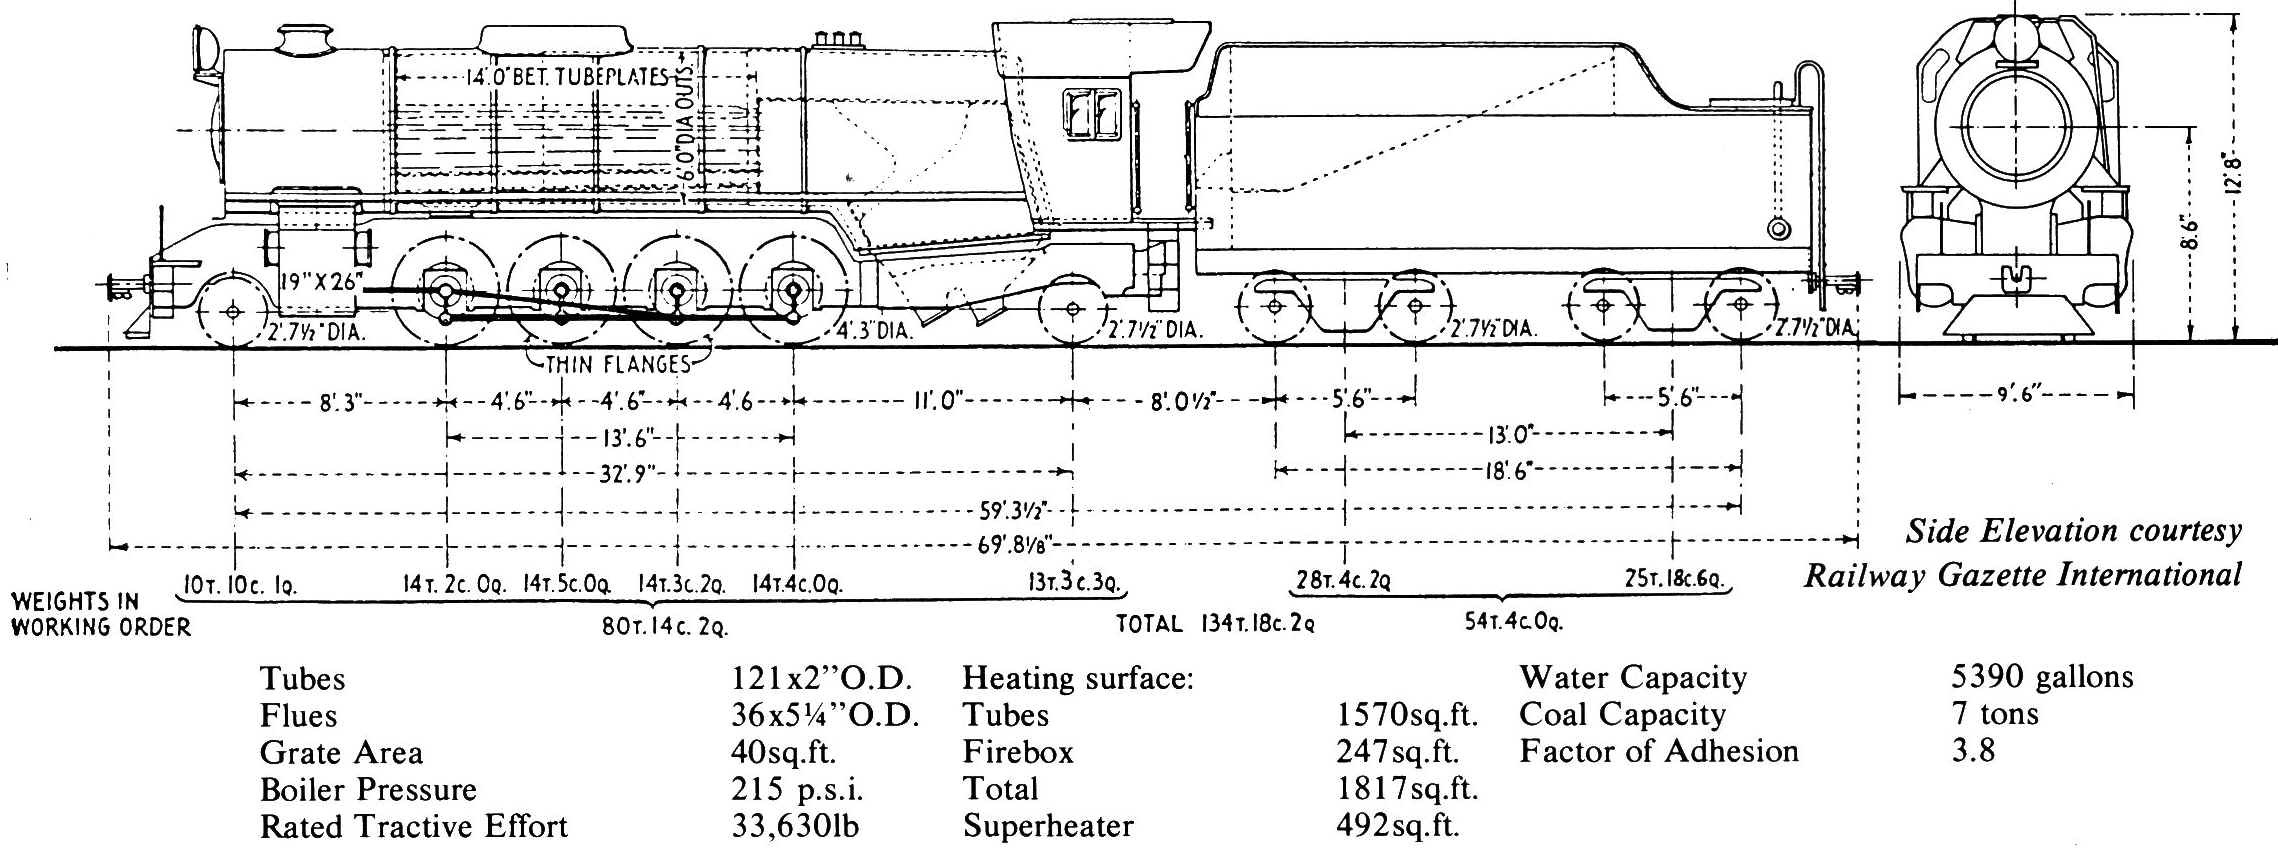 emd diesel locomotive engines